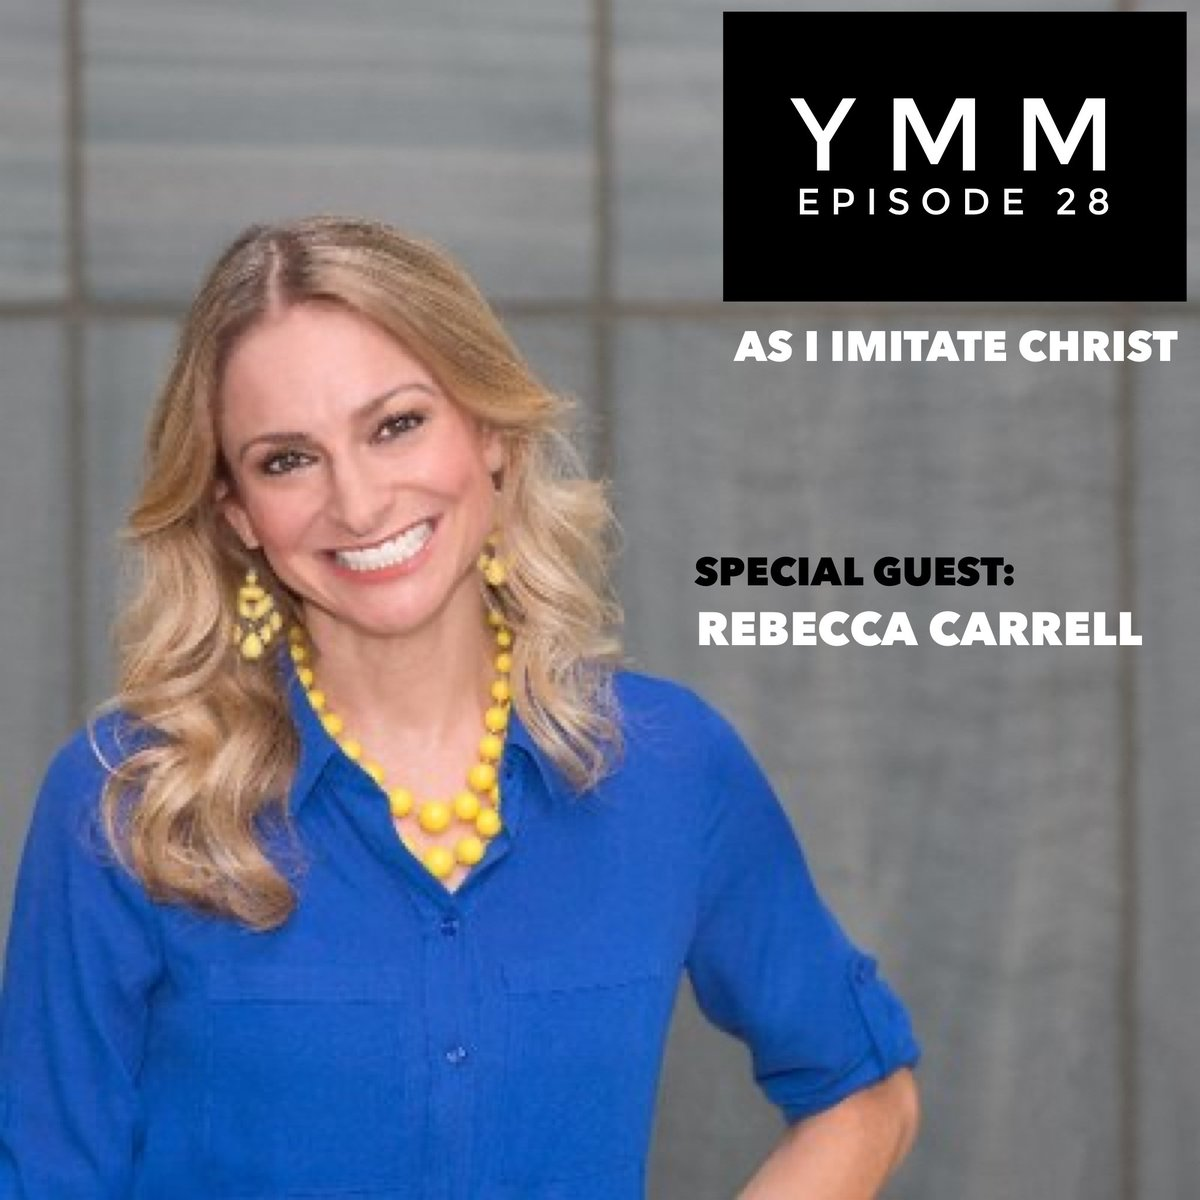 We're supposed to help students pursue what God has for them, which could be a call to ministry. @RebeccaACarrell joins Jeff for our newest episode to talk about her own journey, and how we can encourage students well.  #youthmin #stumin #nextgen #calling  https://t.co/pyxUhjzlgt https://t.co/B45aUazPn6